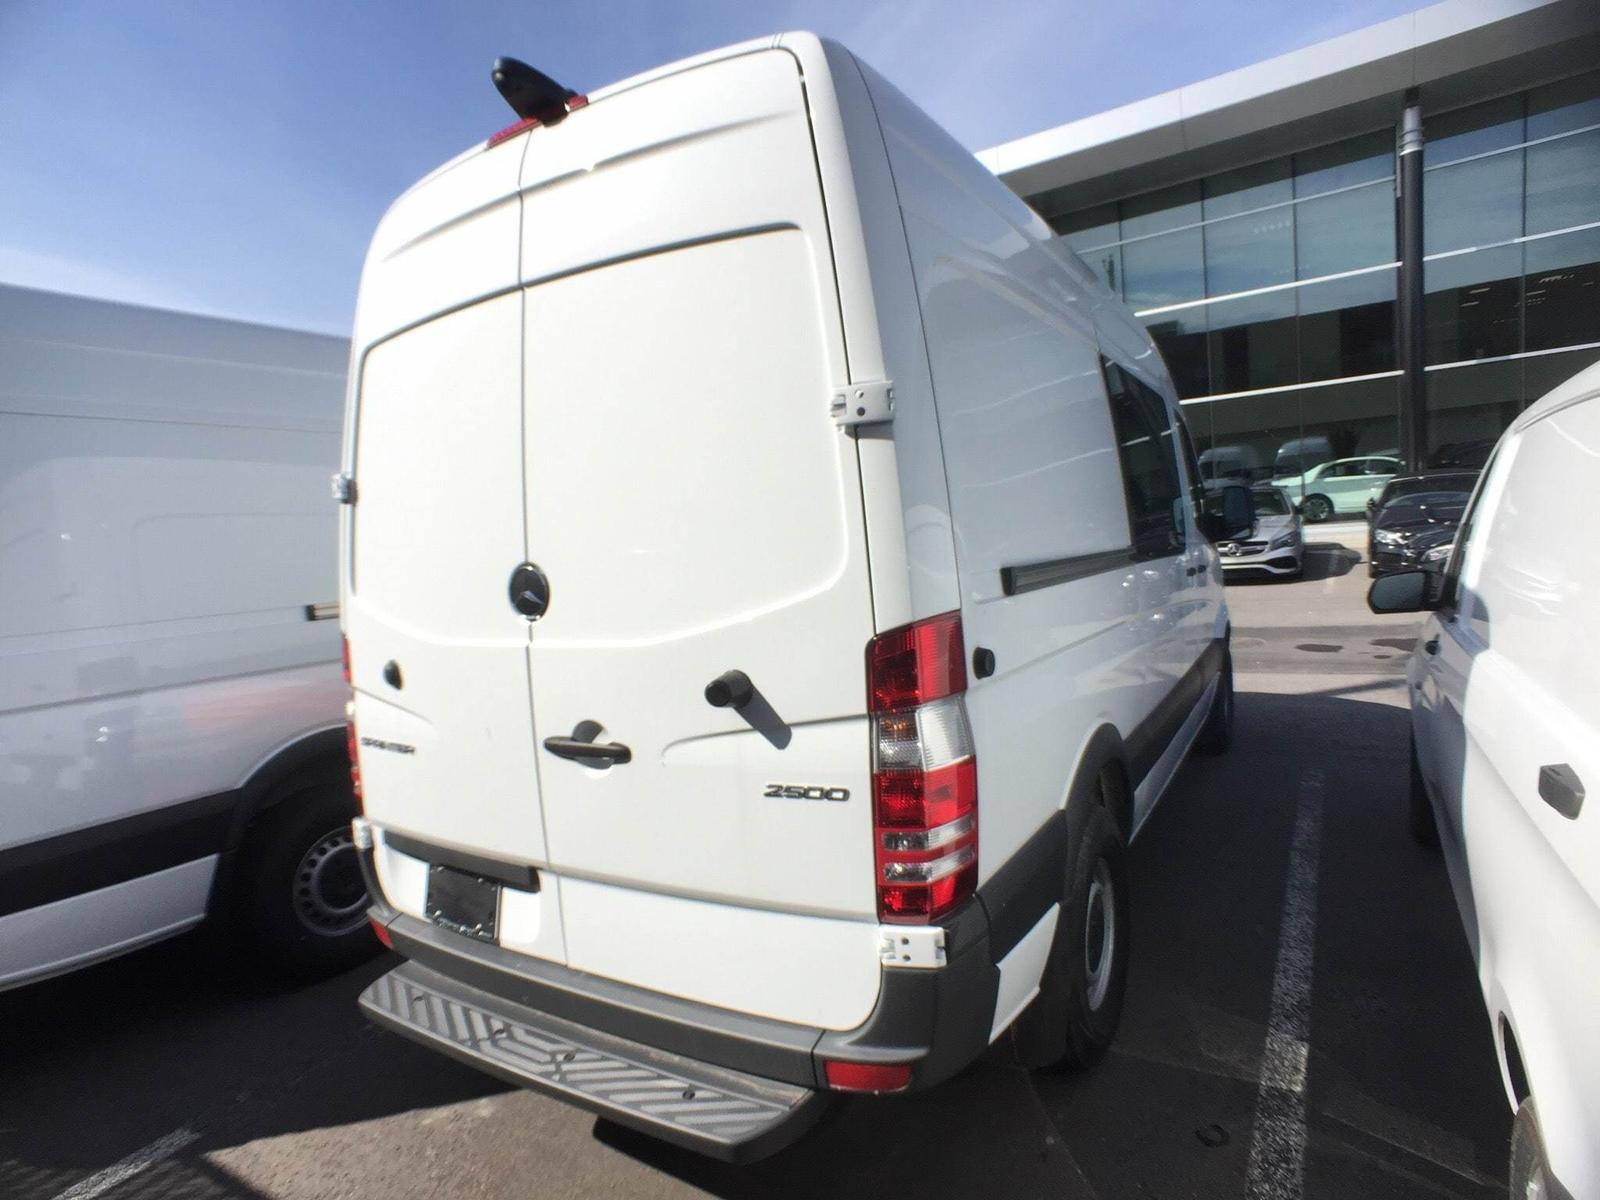 Mercedes-Benz Sprinter V6 2500 cargo 144 5